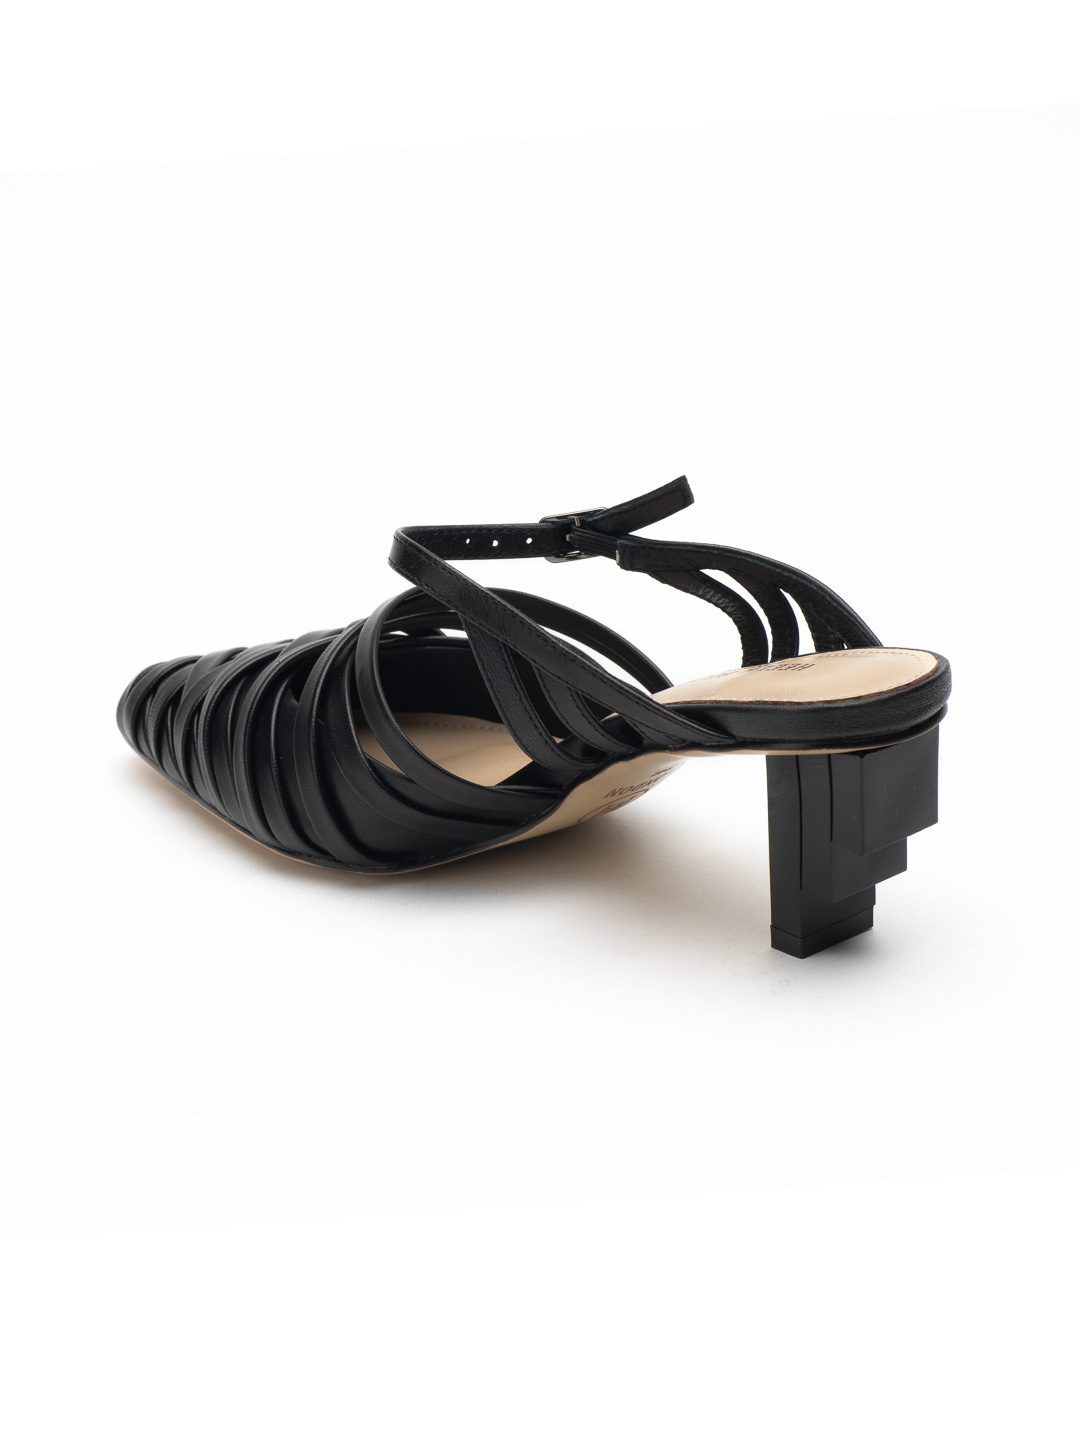 Heel & Buckle London-Shoes-HBDARW086-Asymmetrical Beige Strappy Sandals-Black-3